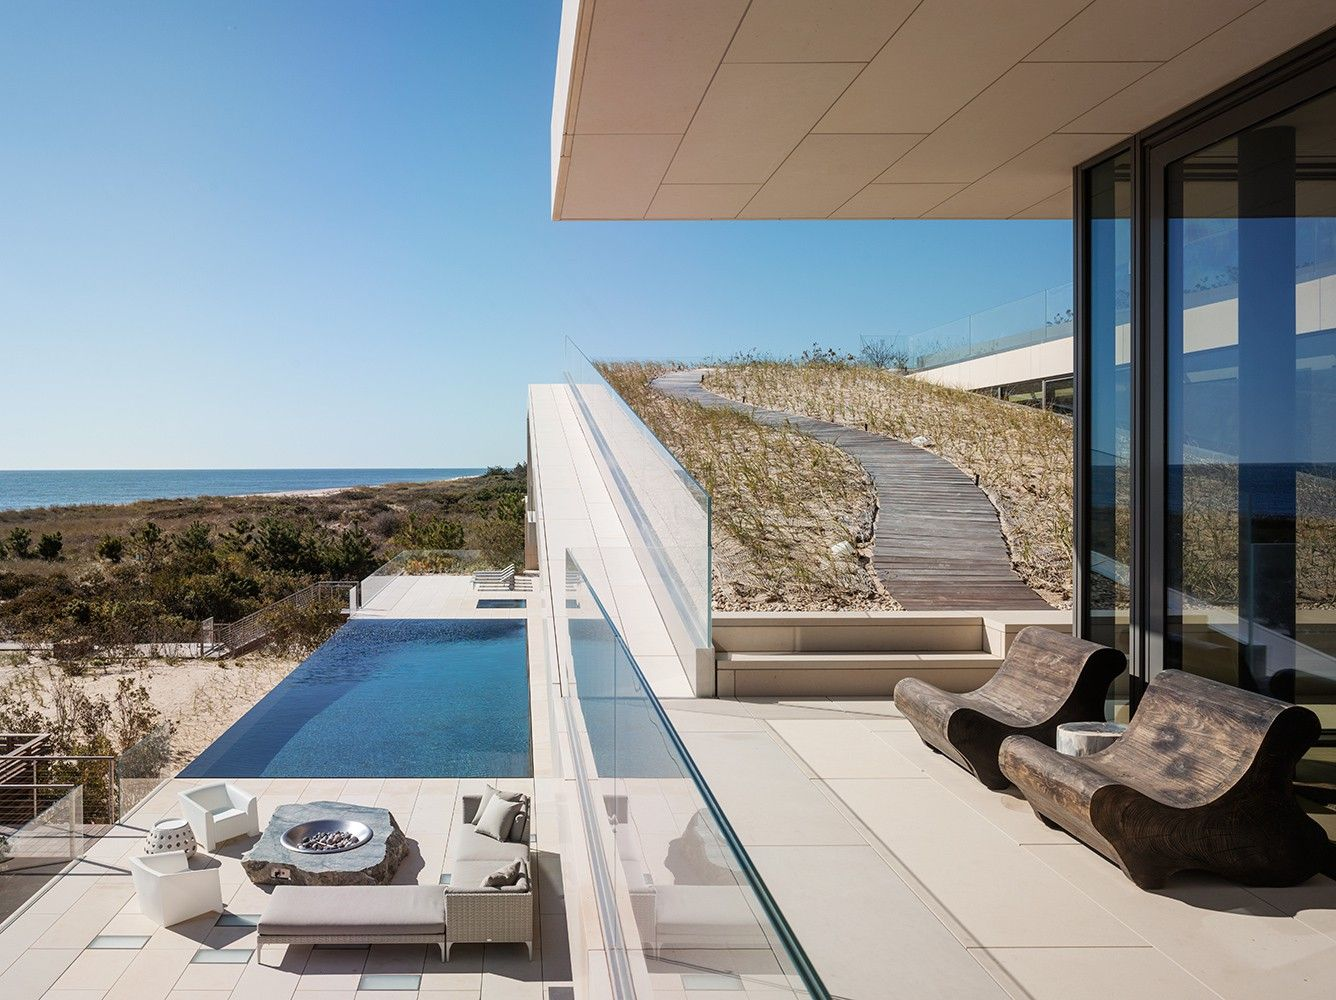 1100 Architect Long Island Ny Sand On The Roof With Timber Path Just Awesome Idea Long Island House Pool Water Features Architect